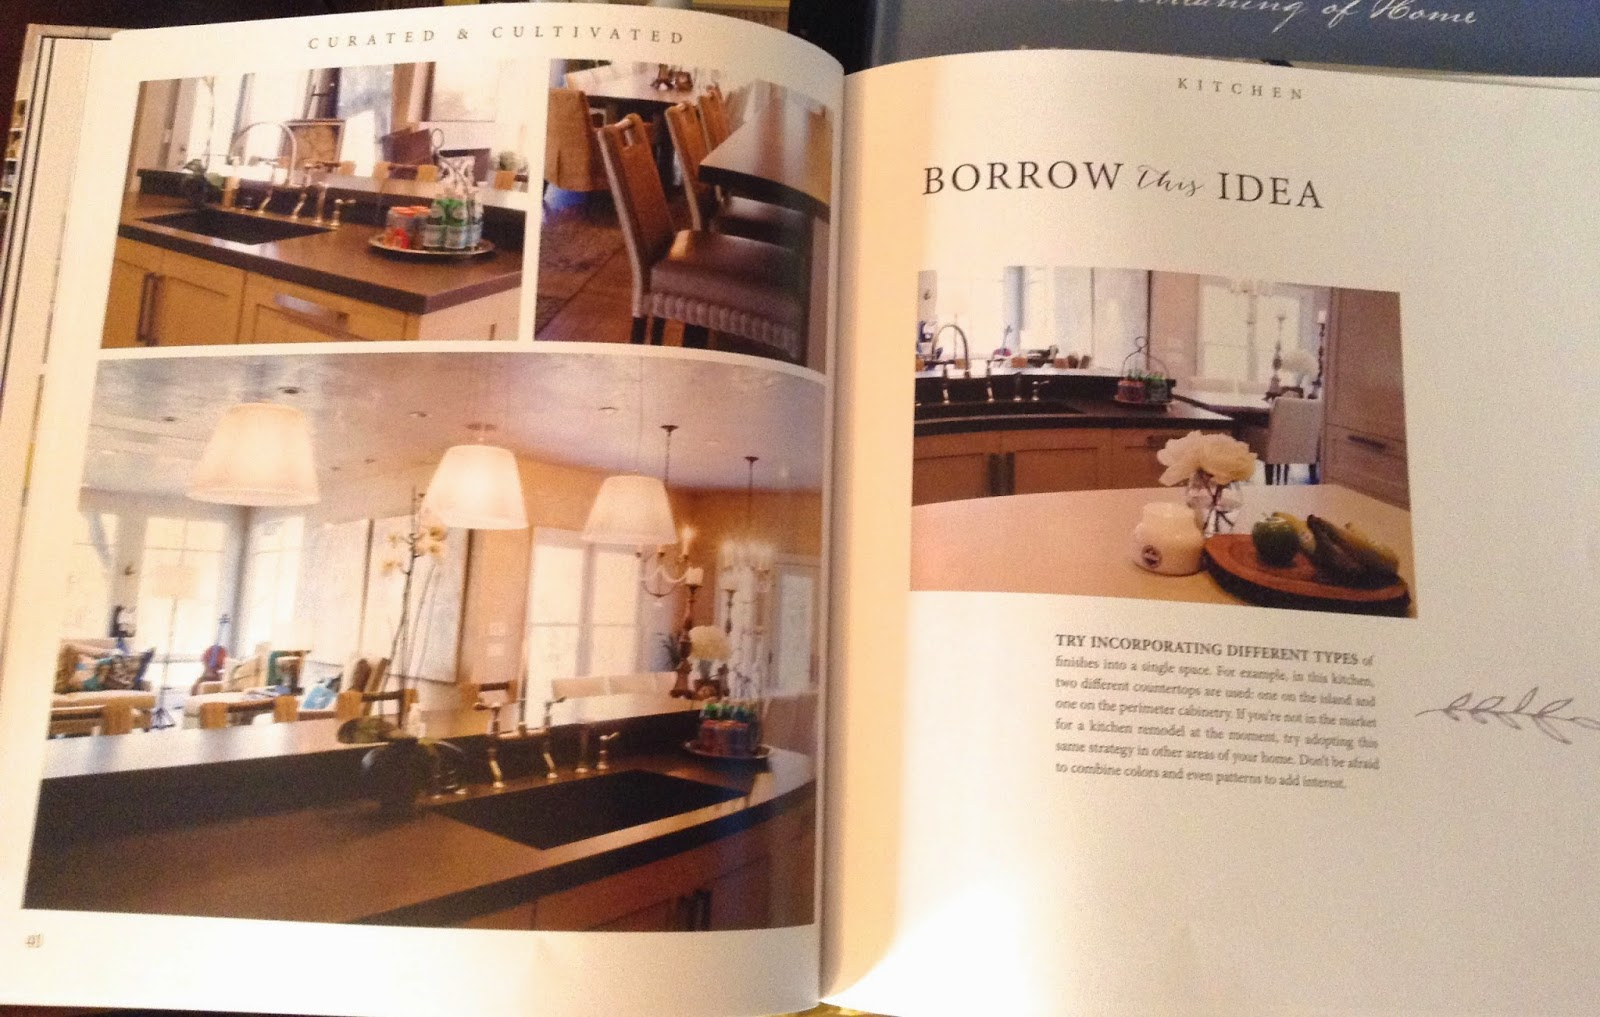 design dump october 2014 life is all about homes that are lived in by real families with real budgets talk about refreshing what a welcome addition to my design book library